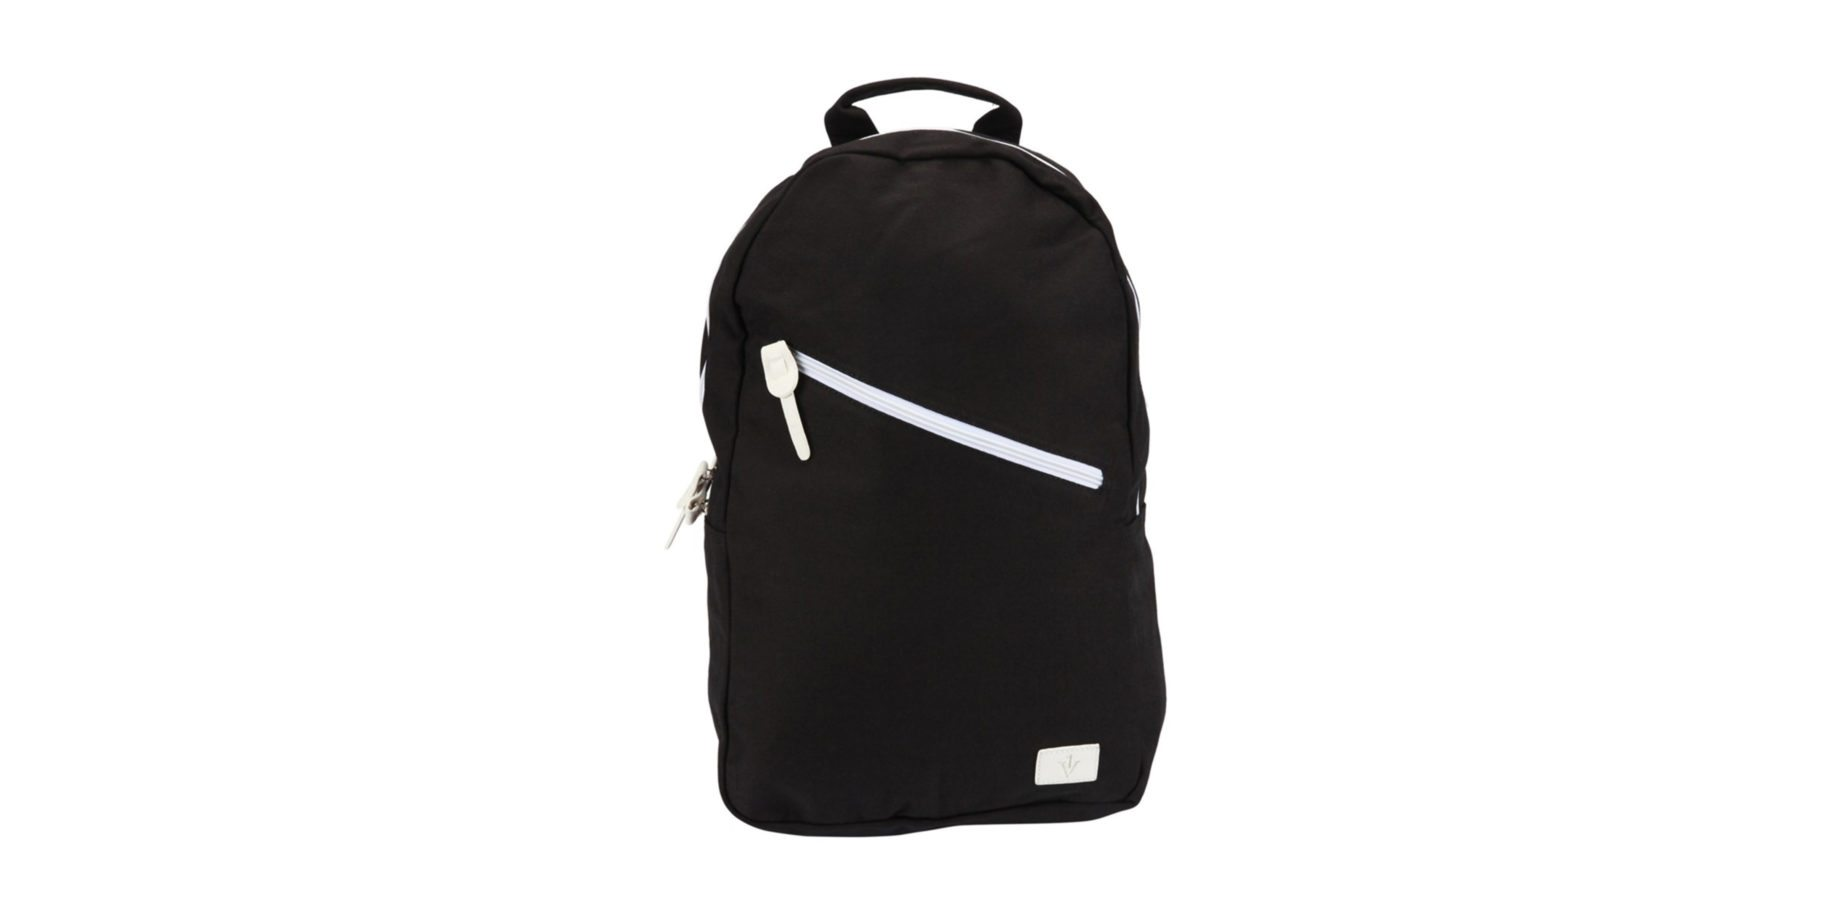 1 Voice Backpack \ Image: 1 Voice